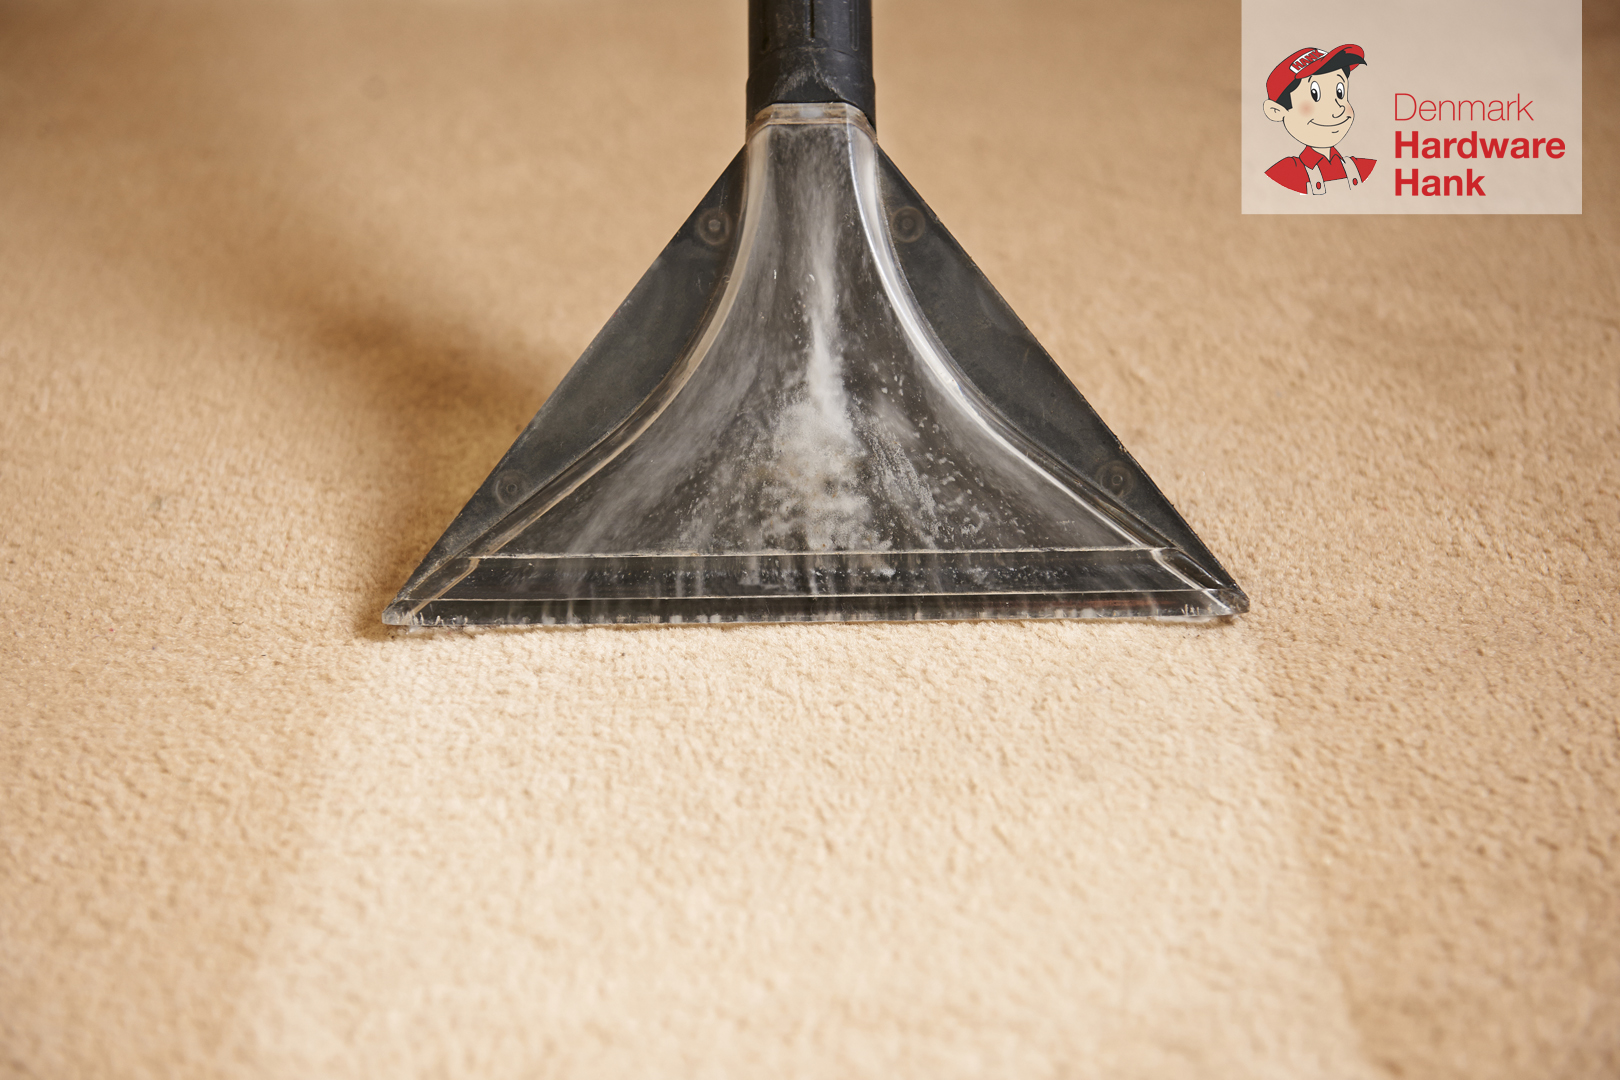 Denmark Hardware Hank Professionally Cleaning Carpets